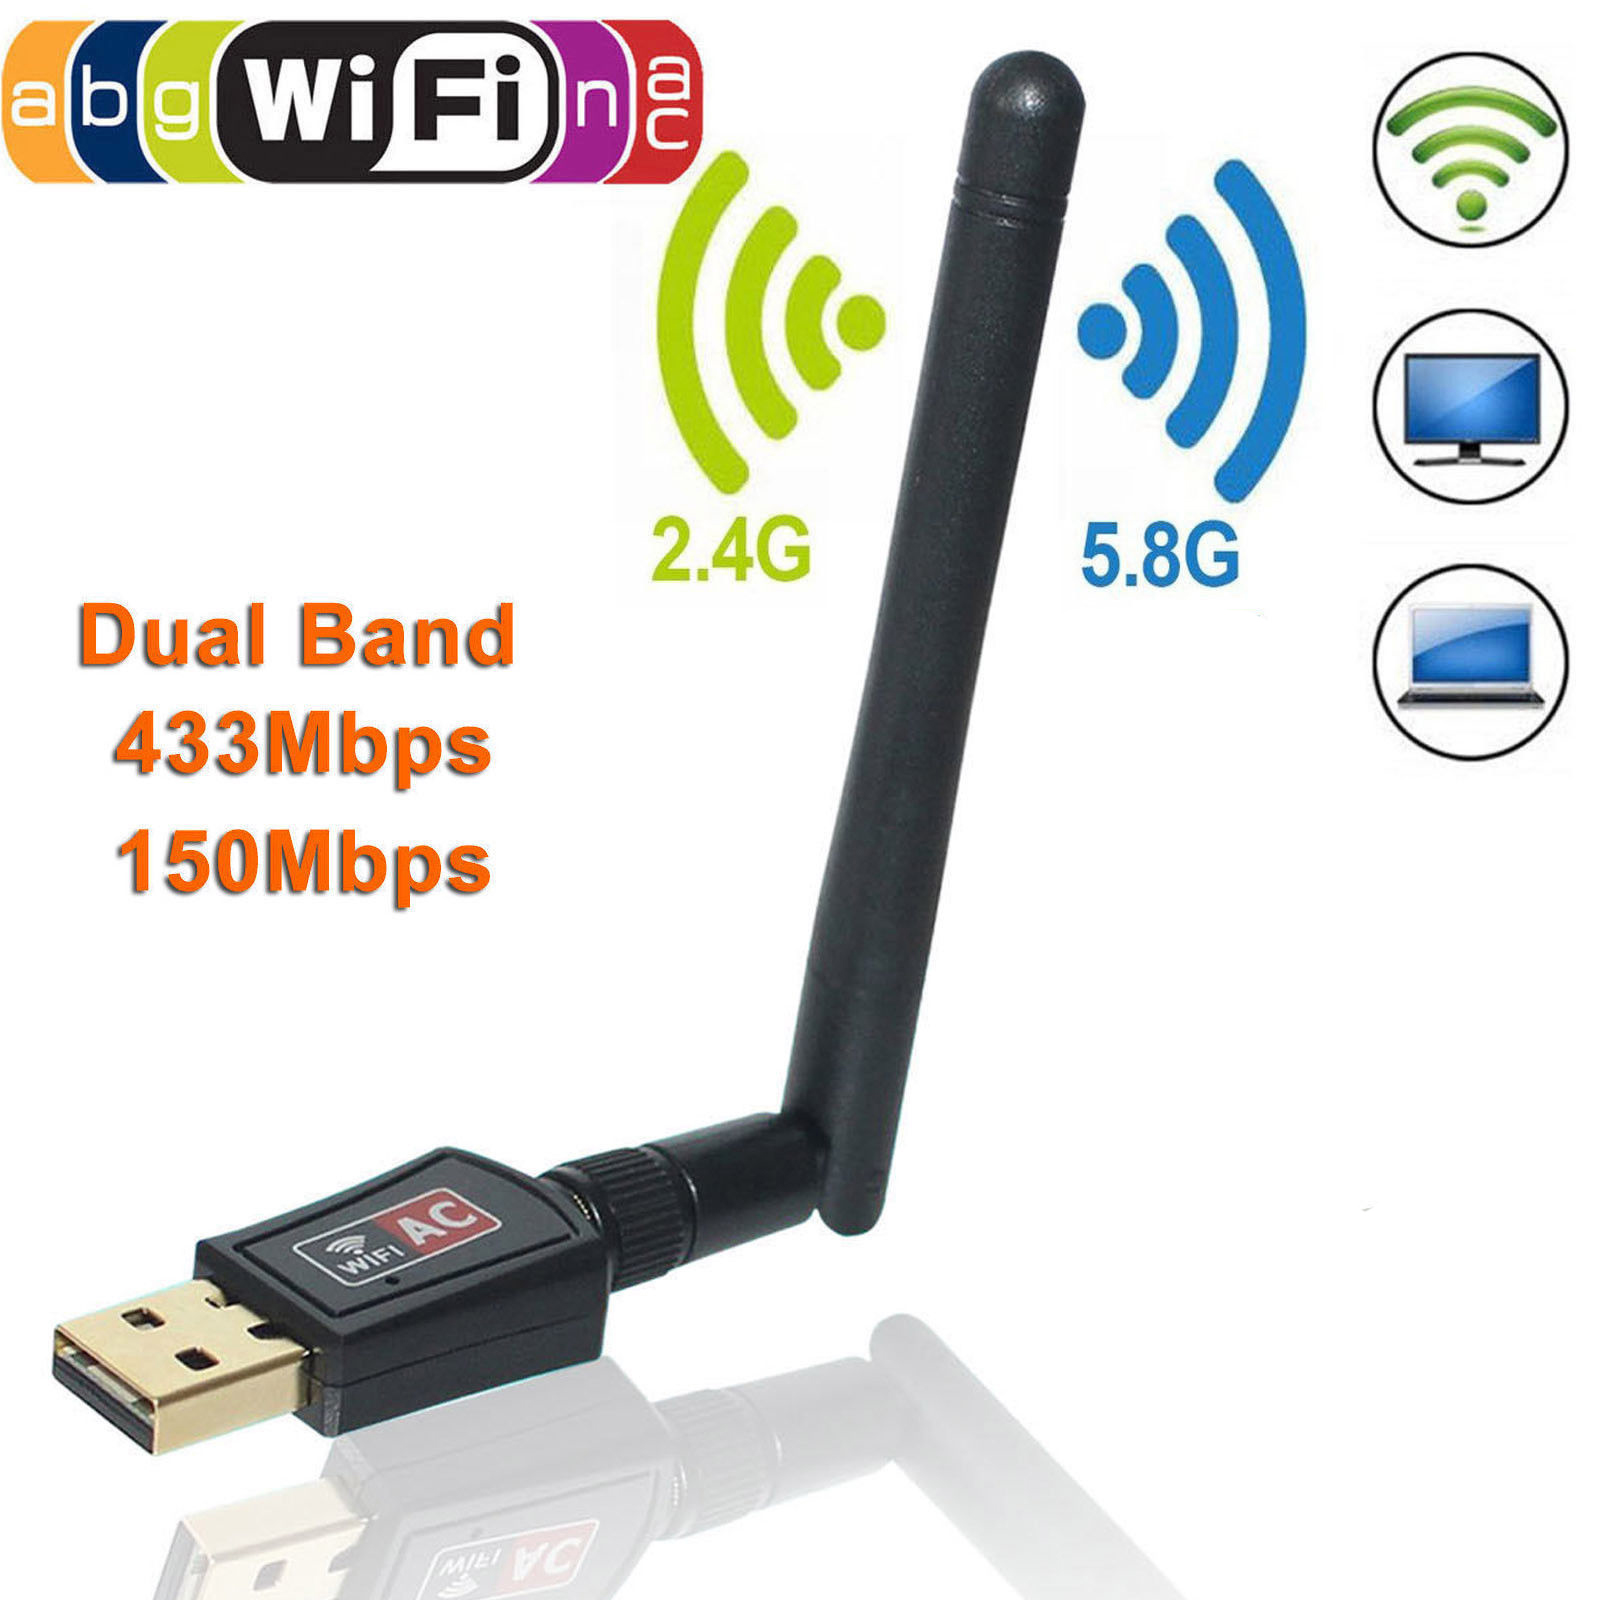 AC600 USB WiFi Adapter 600Mbps Dual Band USB WiFi Dongle Wireless Network Adapter with 3DBi High Gain Antenna up to 5G 433Mbps+2.4G 150Mbps Support IEEE 802.11 A/B/G/N/AC Ethernet